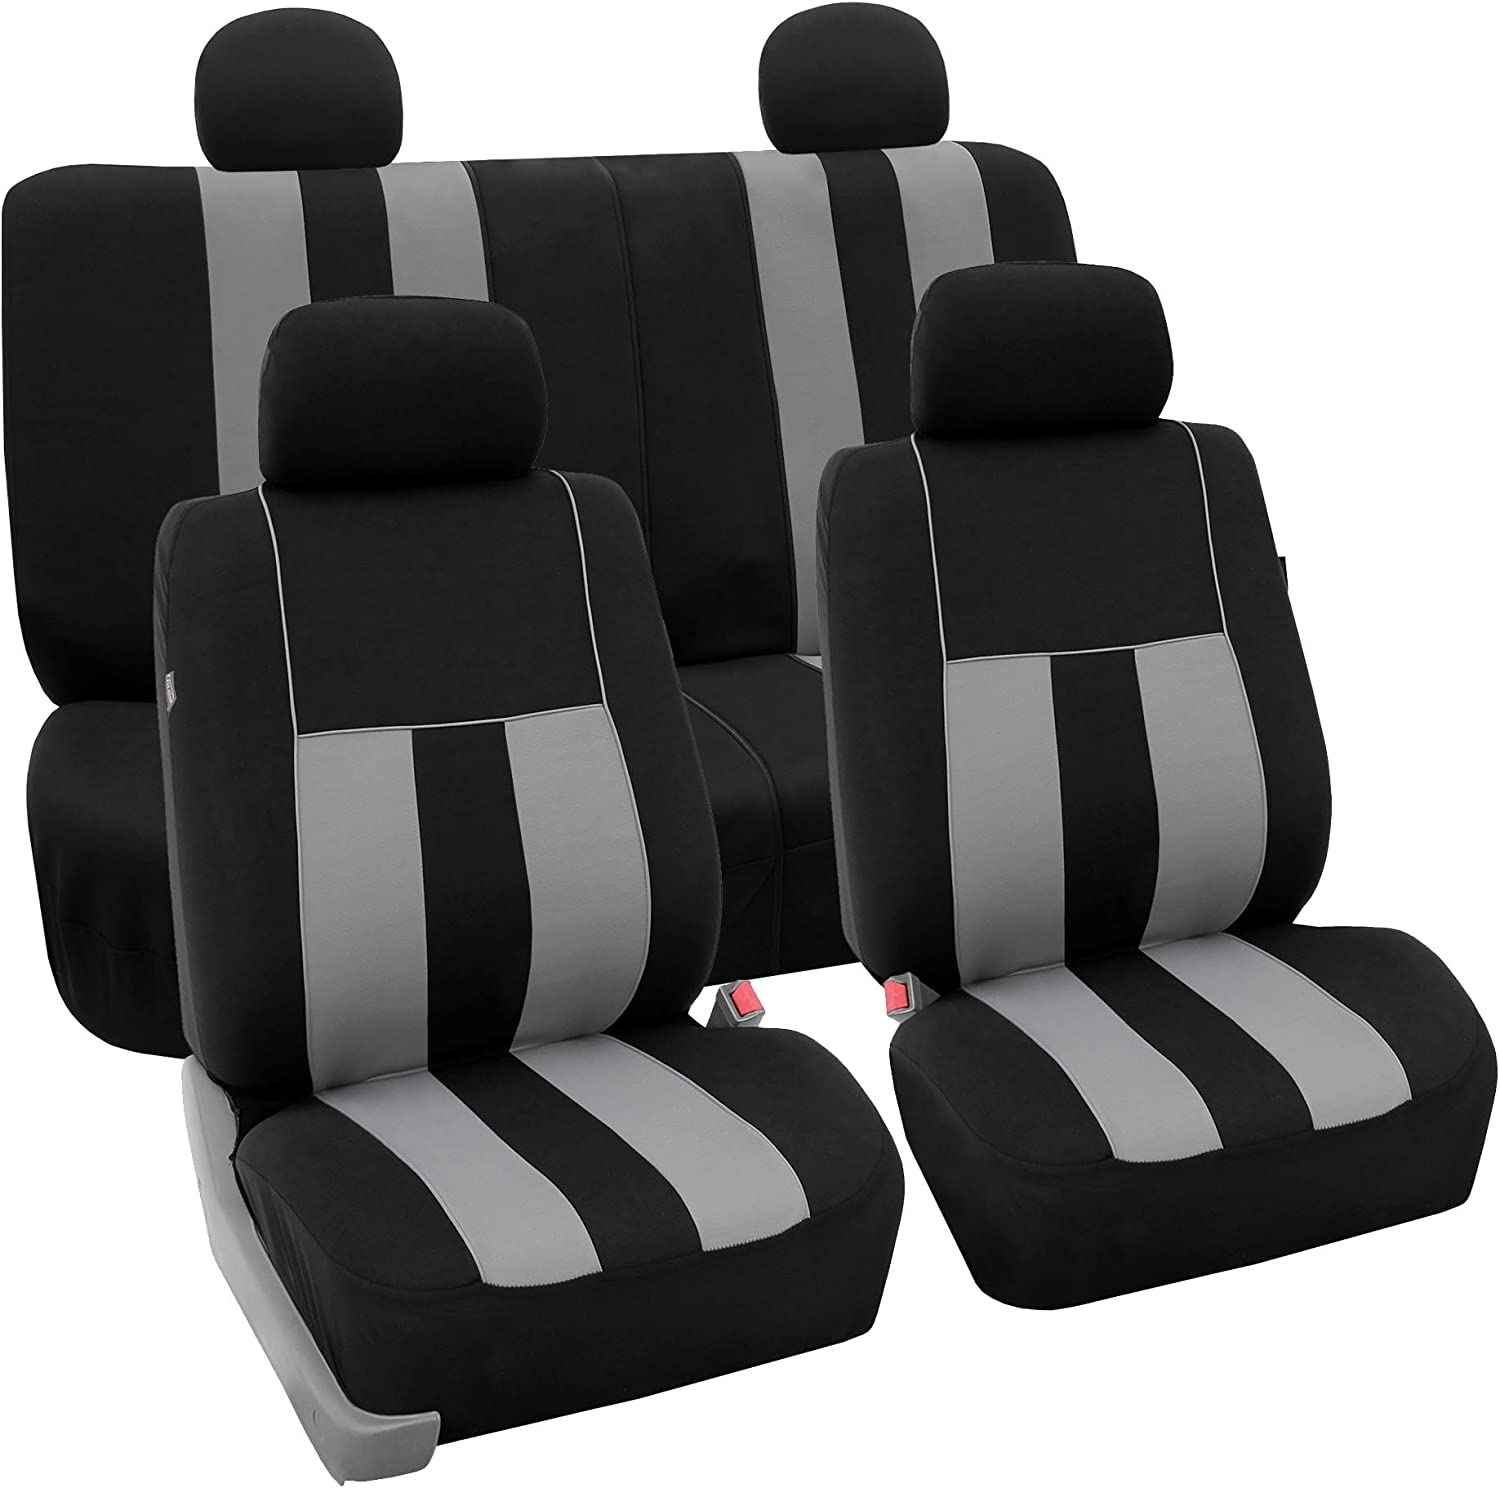 FH Group FB036114 Striking Striped Seat Covers (Gray) Full Set – Universal Fit for Cars Trucks & SUVs